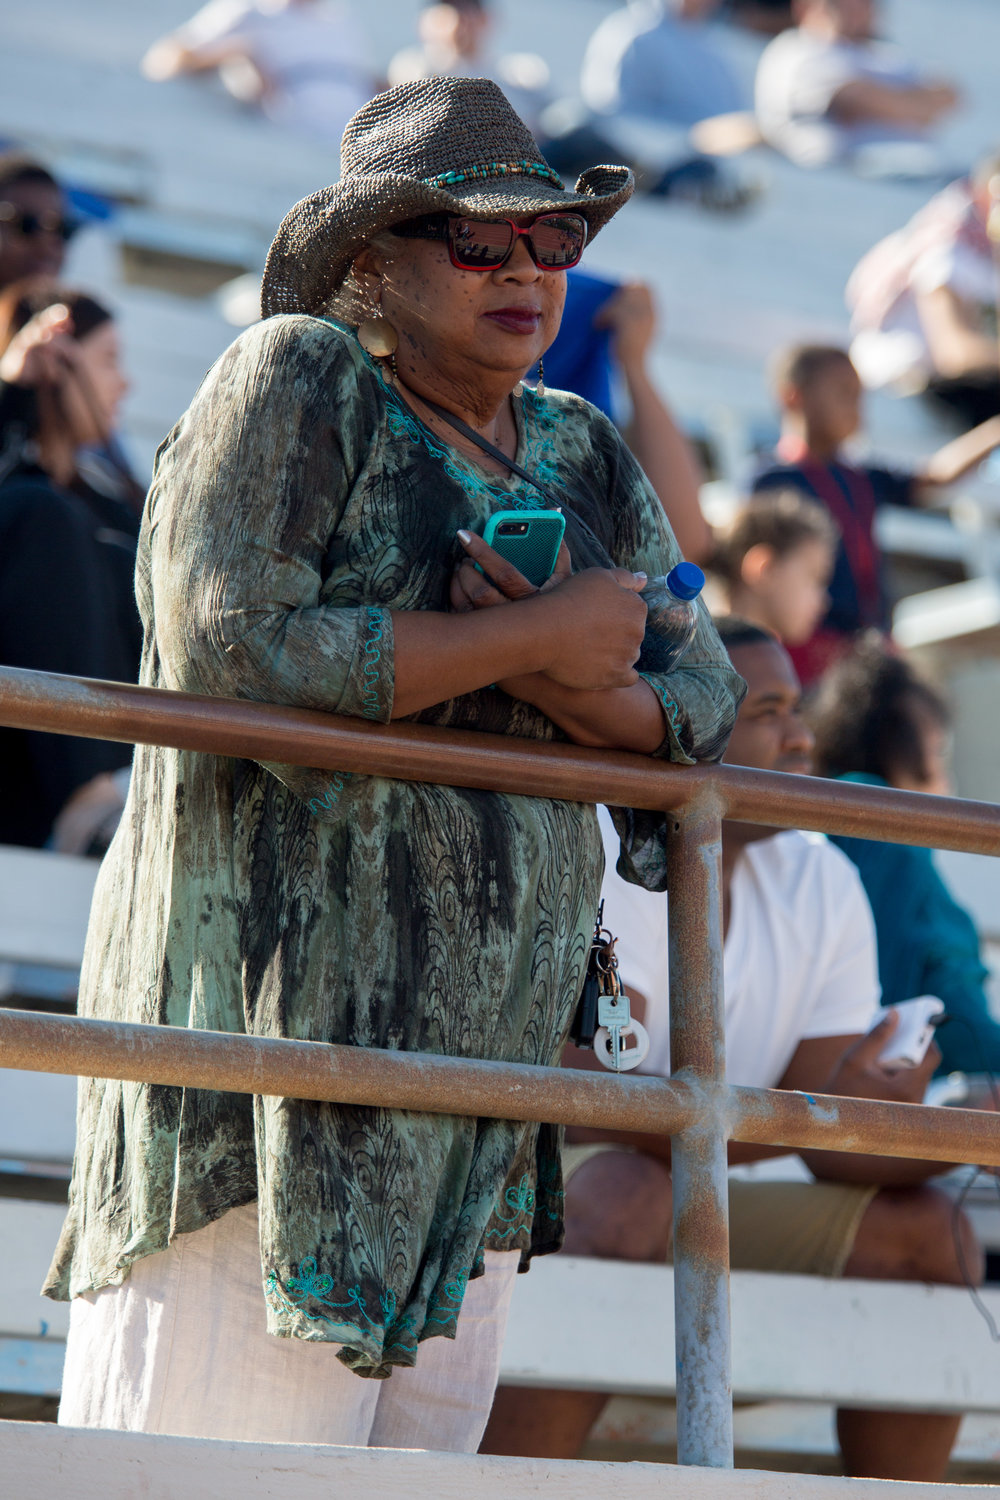 Dr. Kathryn Jeffery, Santa Monica College President, watches homecoming football game of Santa Monica College Corsairs against College of the Canyons Cougars on Saturday, November 4th, 2017 at Corsair Stadium at Santa Monica College Main Campus in Santa Monica, California. (Photo by Yuki Iwamura)